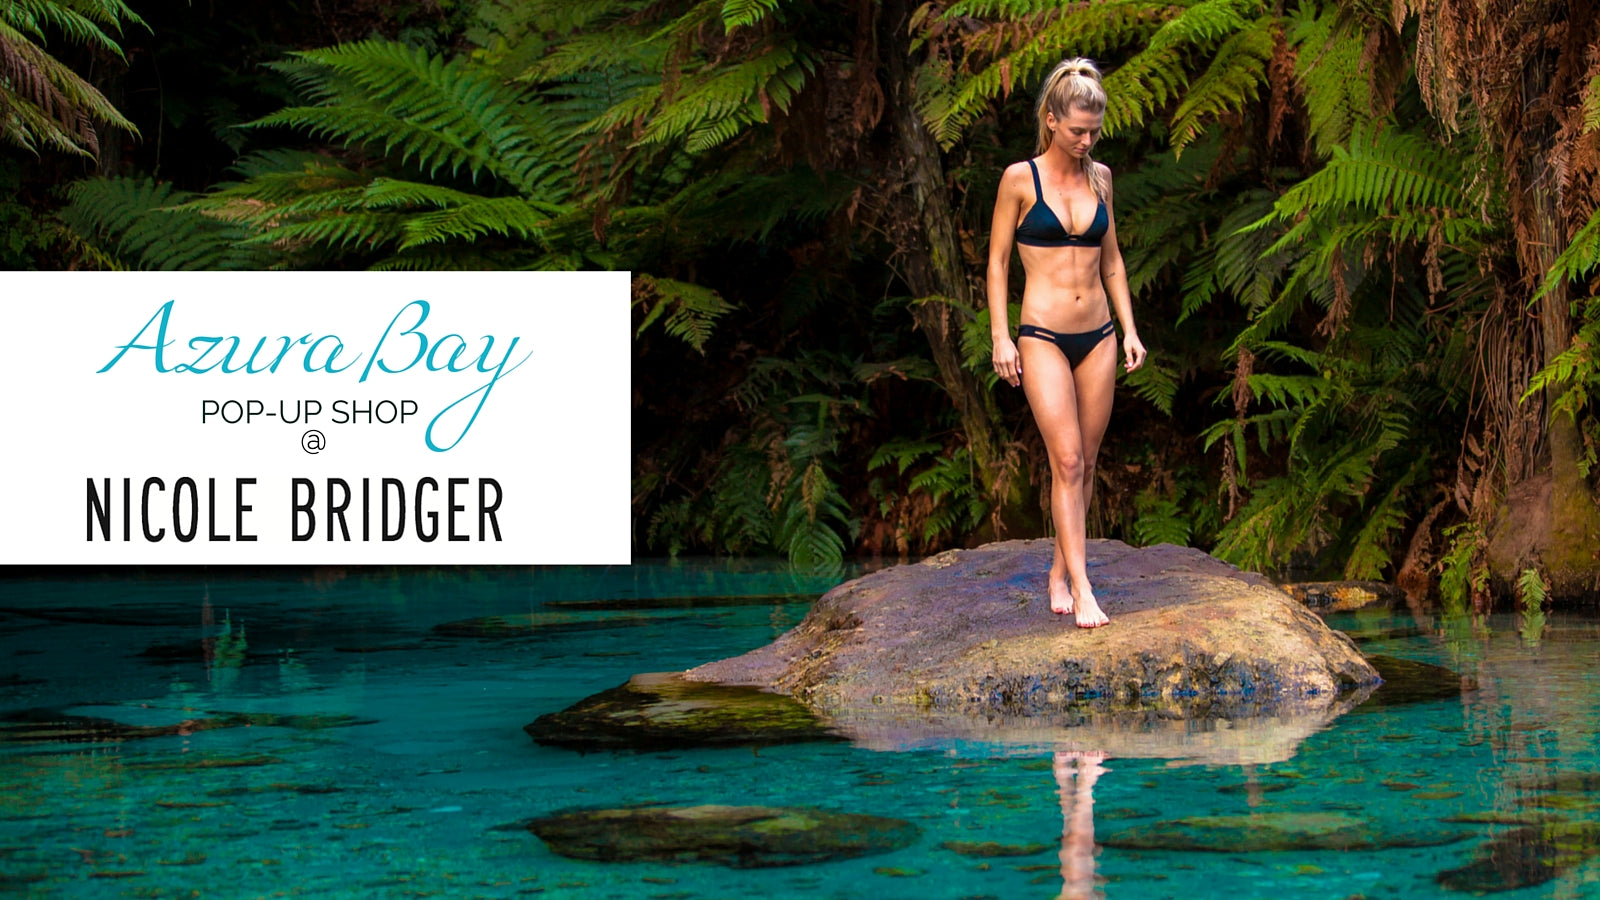 Azura Bay Pop-Up Shop in Vancouver at Nicole Bridger